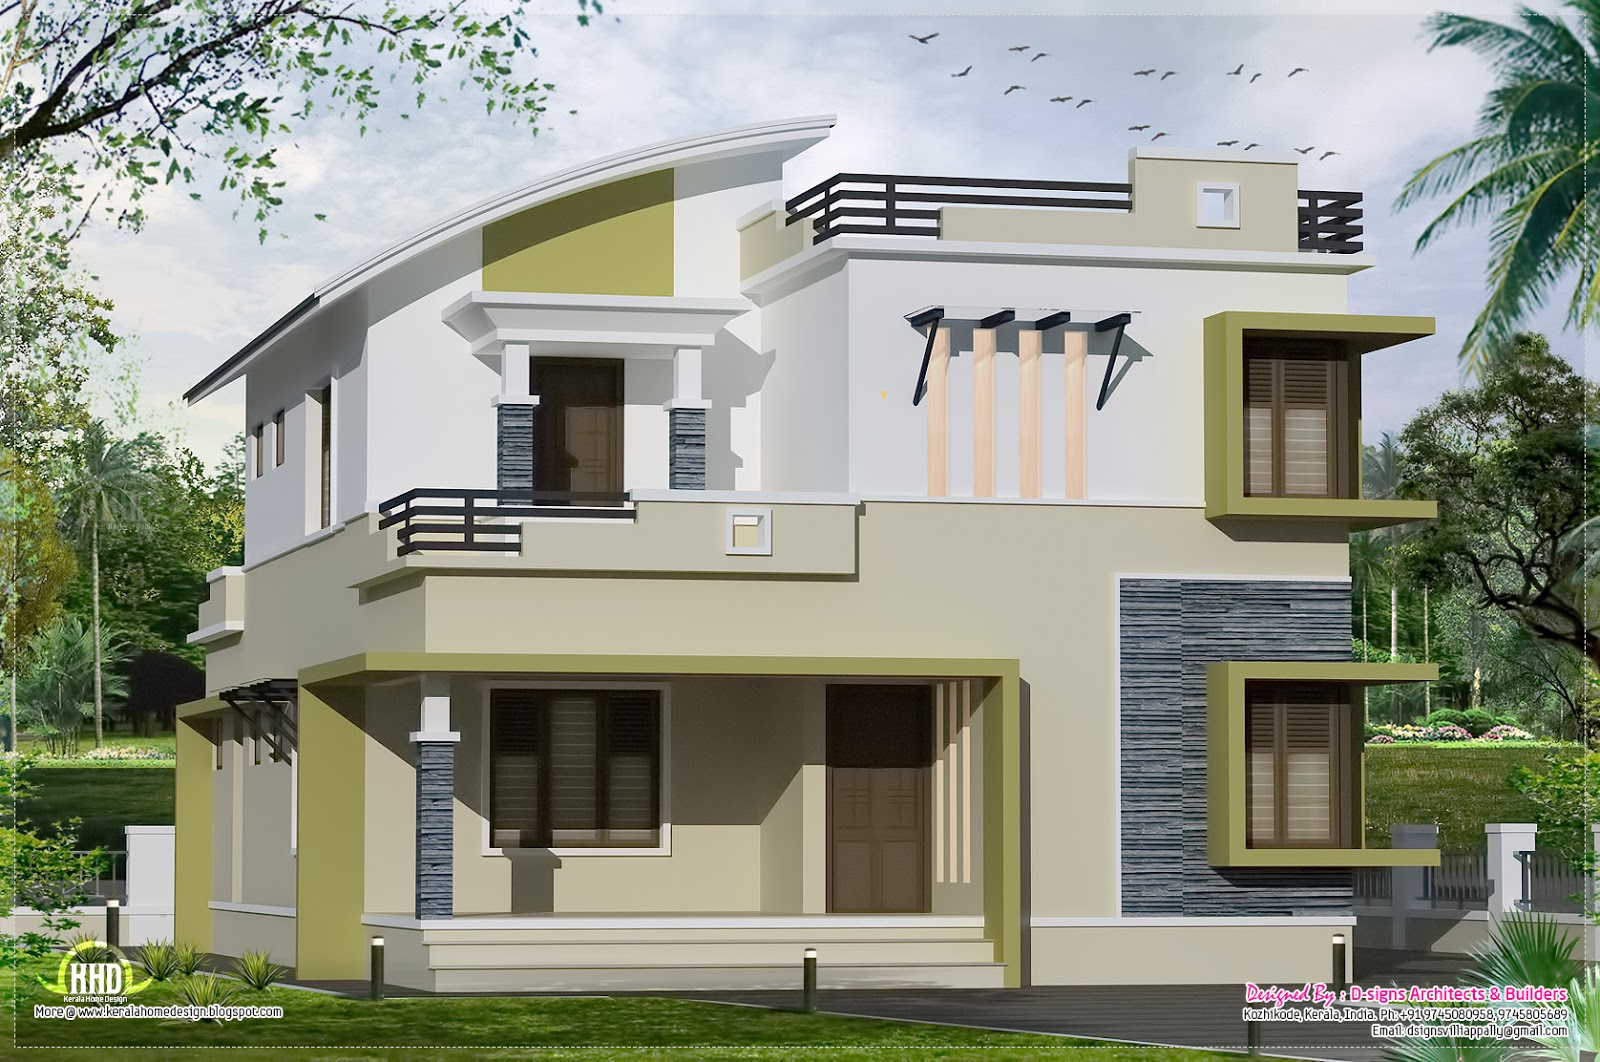 2400 Square Feet 2 Floor House Kerala Home Design And